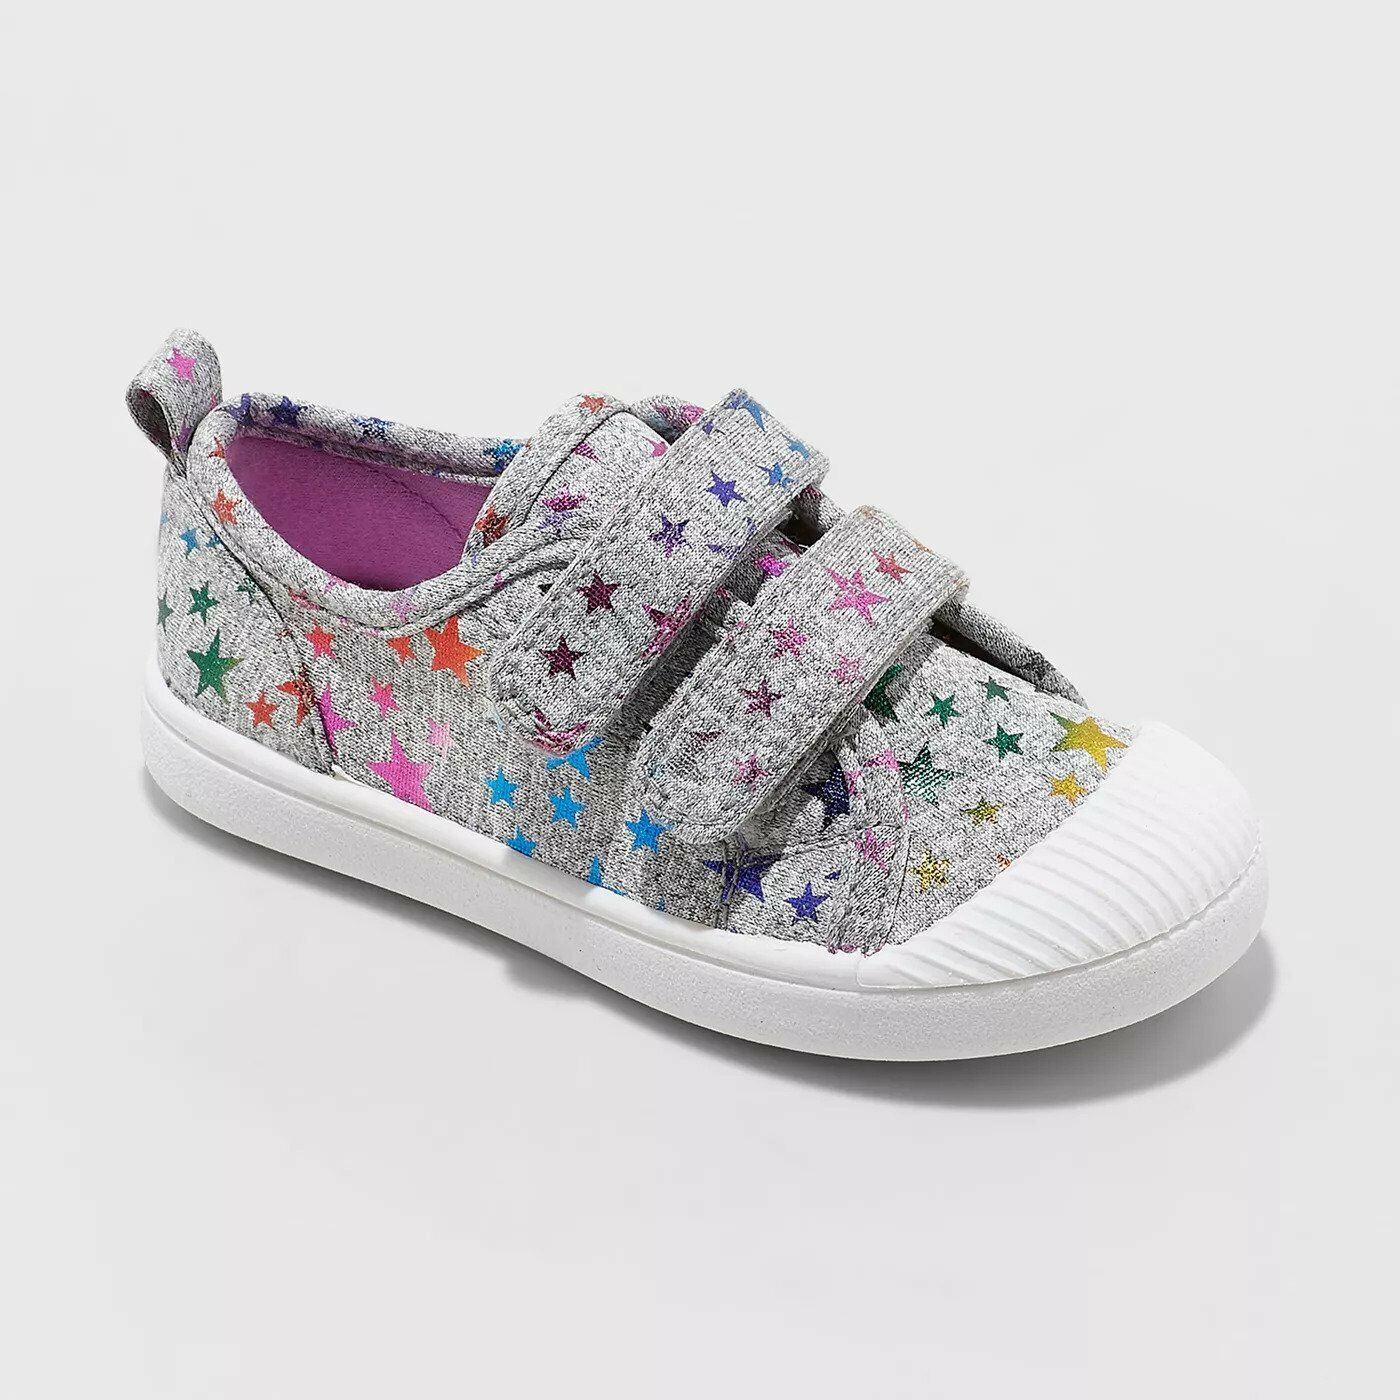 Toddler Girls Madge Adjustable Easy Close Sneakers 9 Gray w/